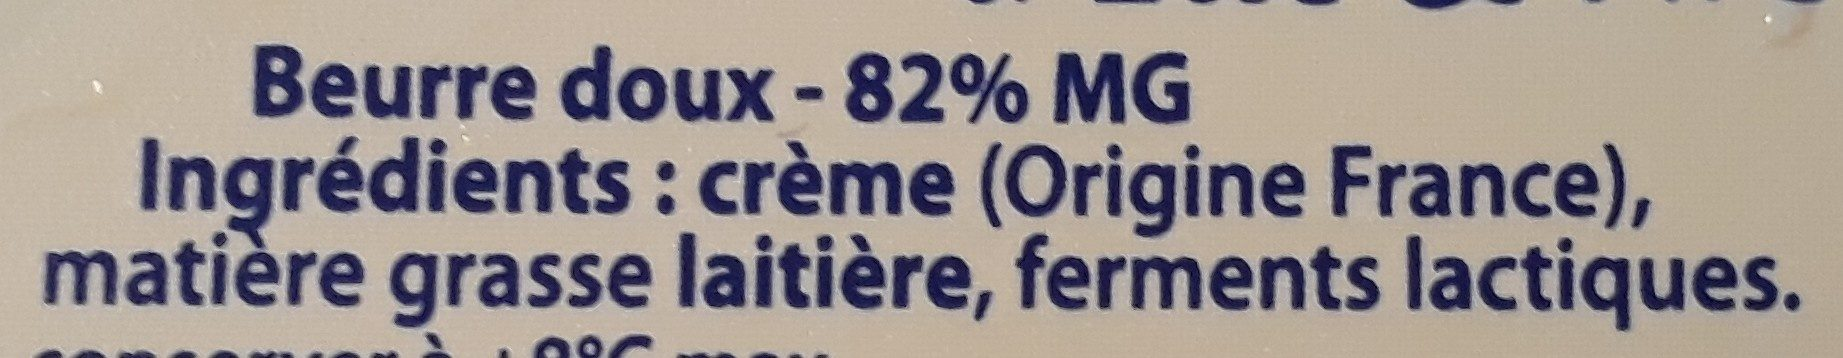 Le Beurre Tendre barquette doux - Ingredients - fr